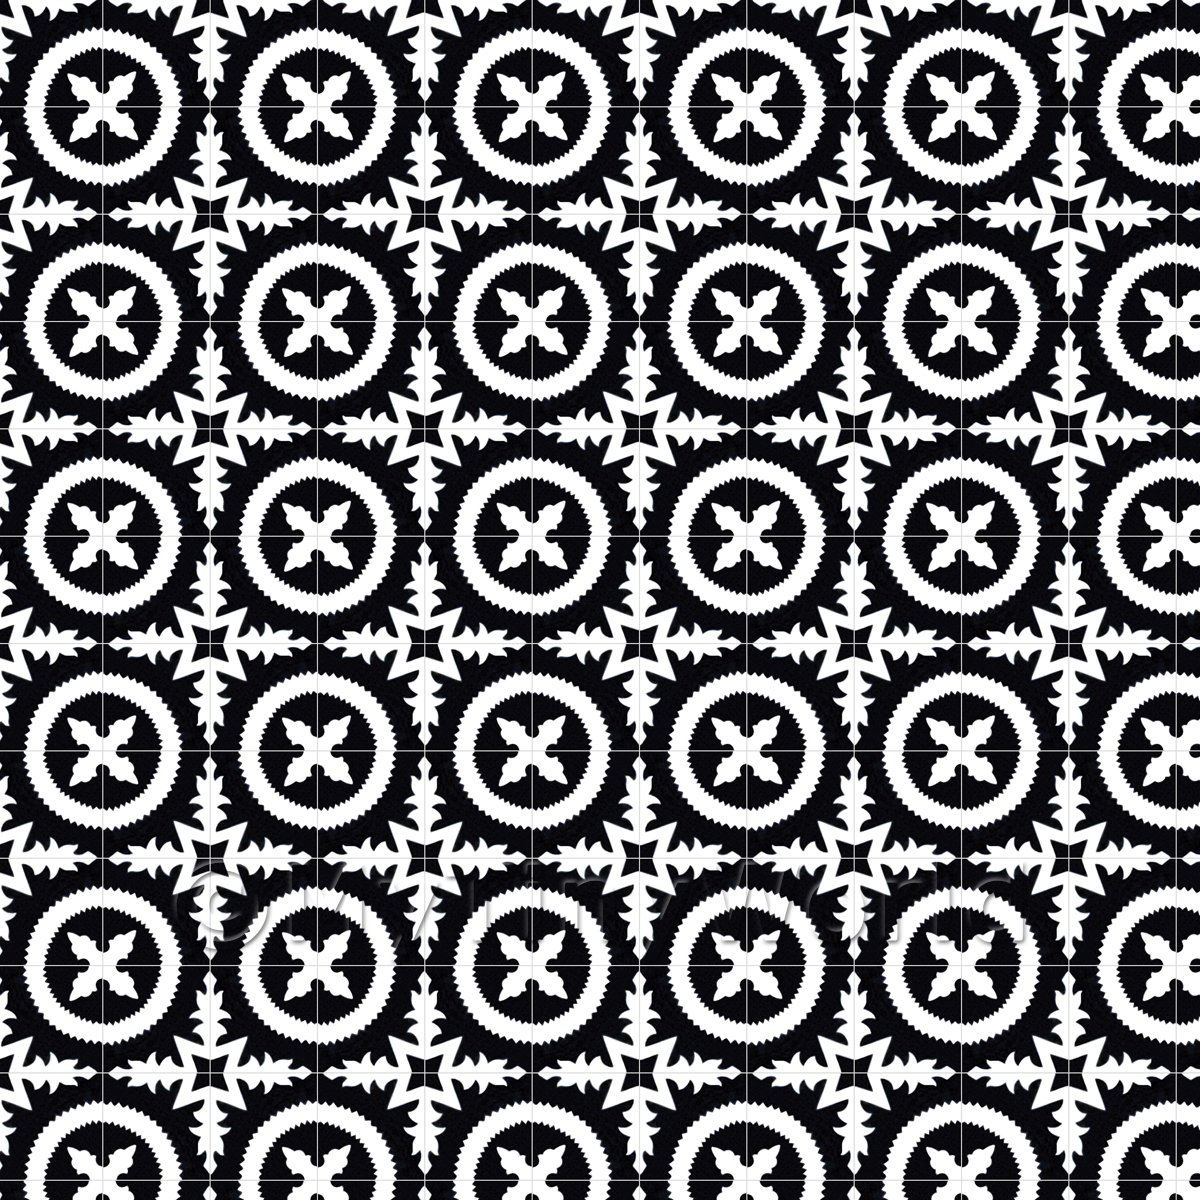 1:12th Black And White Floral Circle Design Tile Sheet With Grey Grout